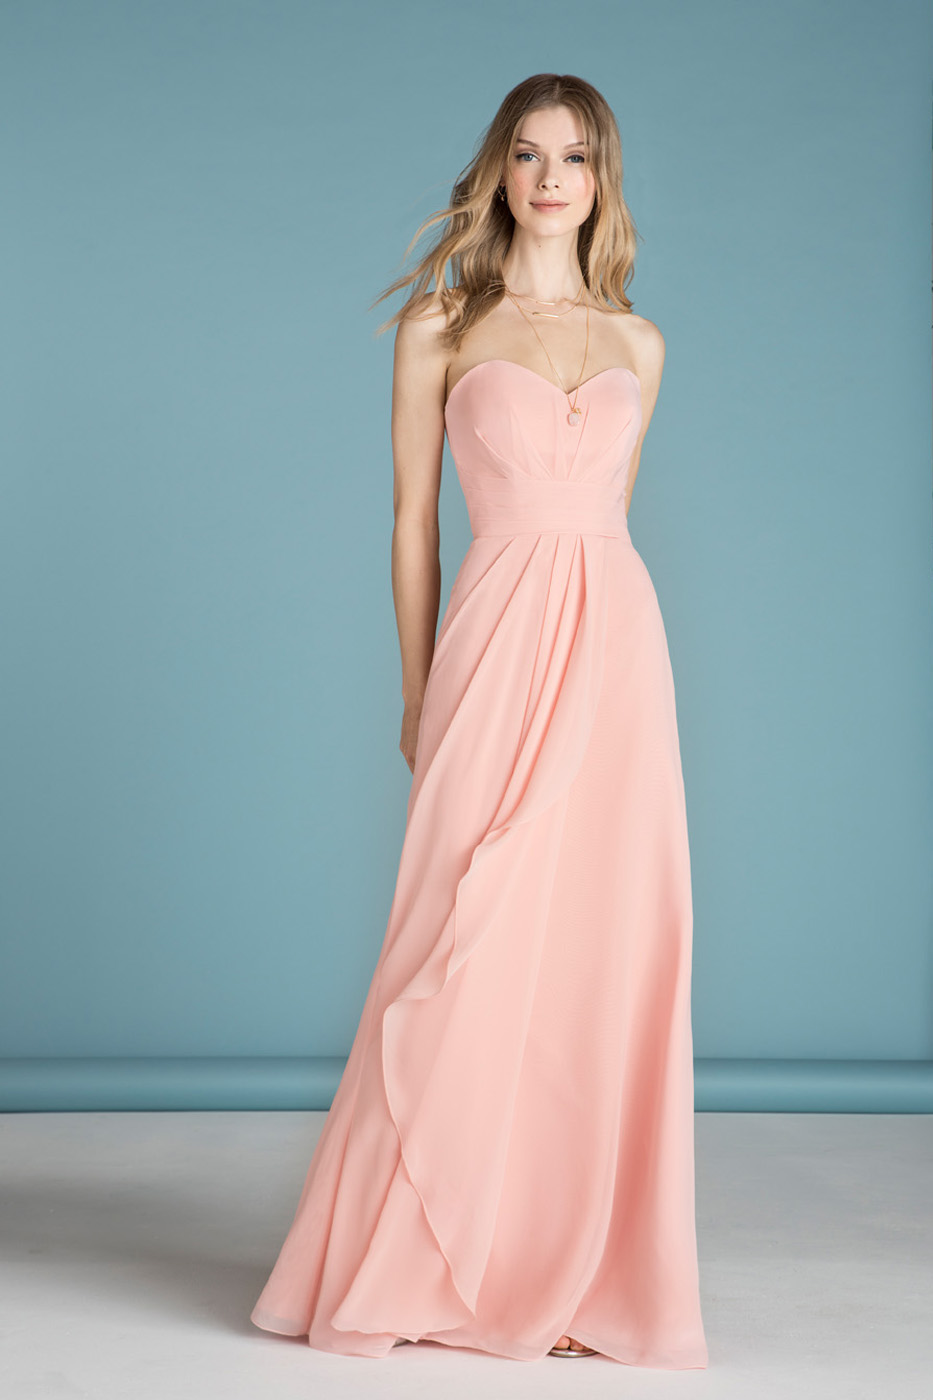 STYLE 18663 : RADIAL PLEATED CHIFFON